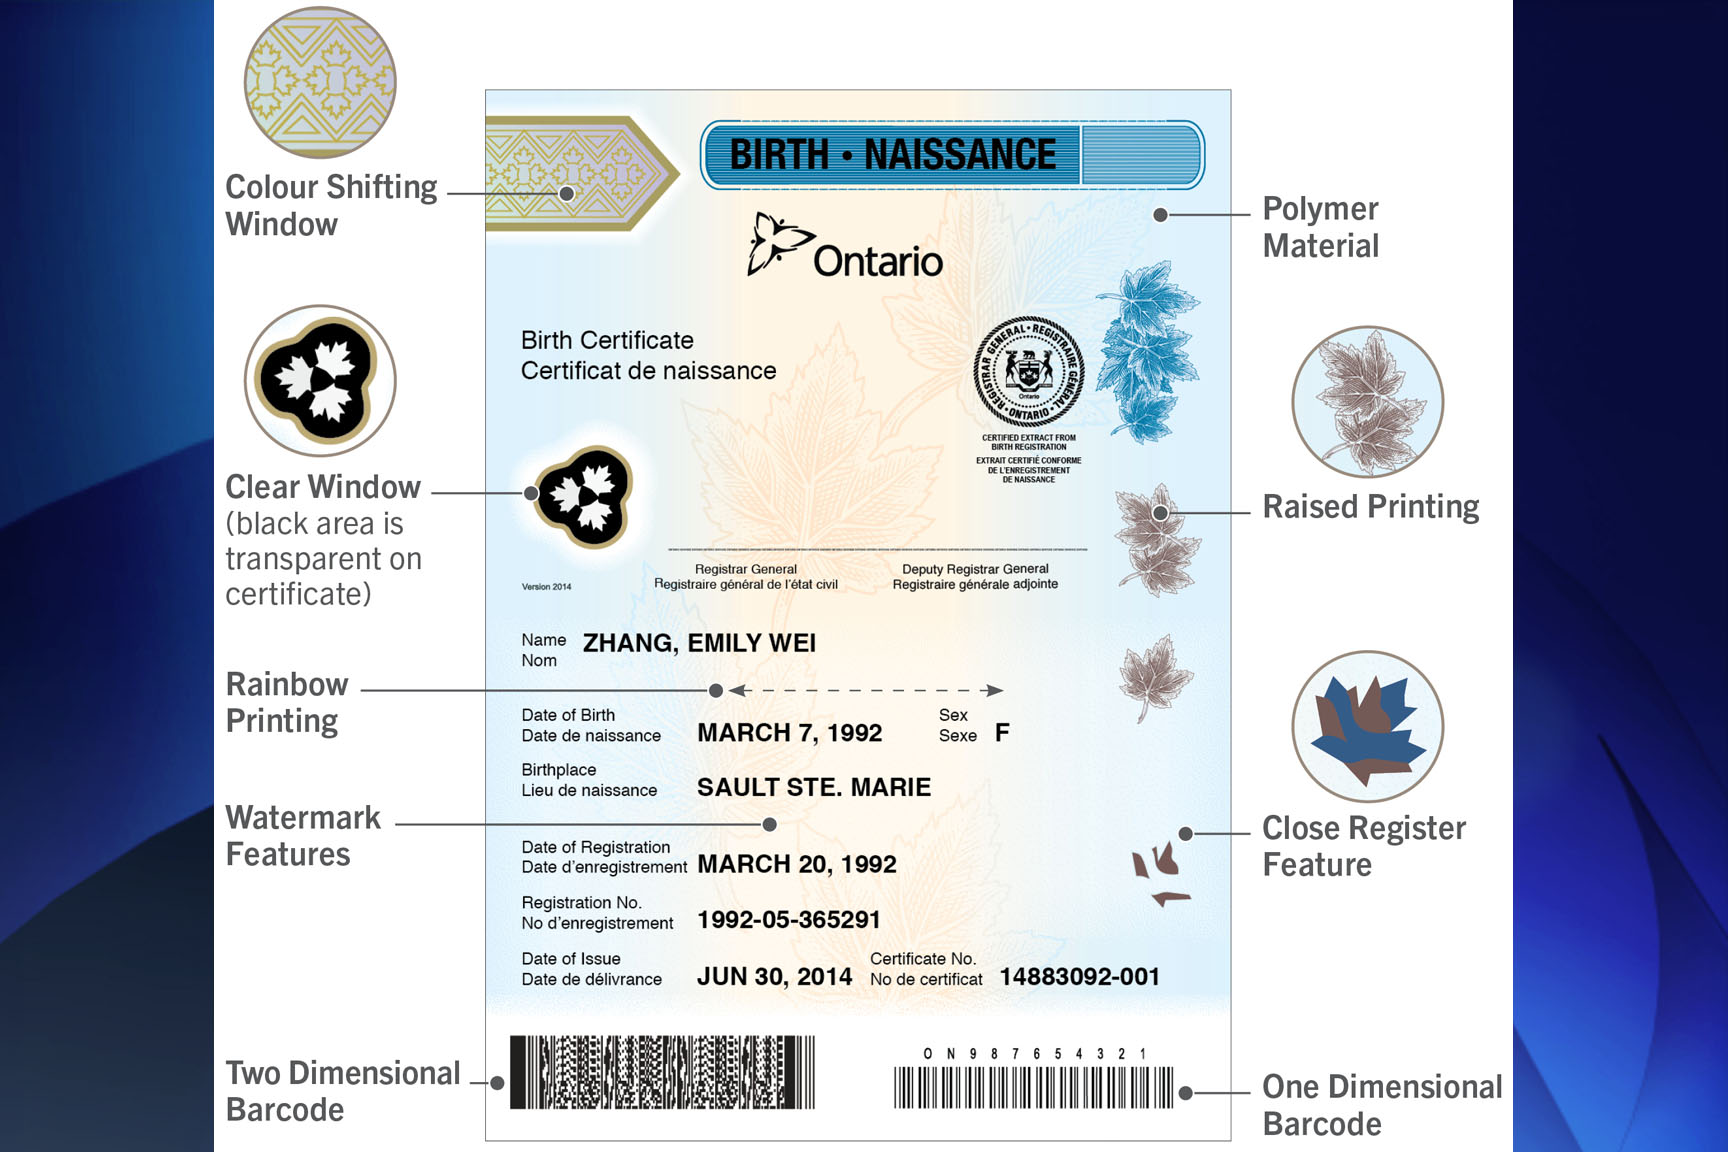 Ontario introduces new polymer birth certificates